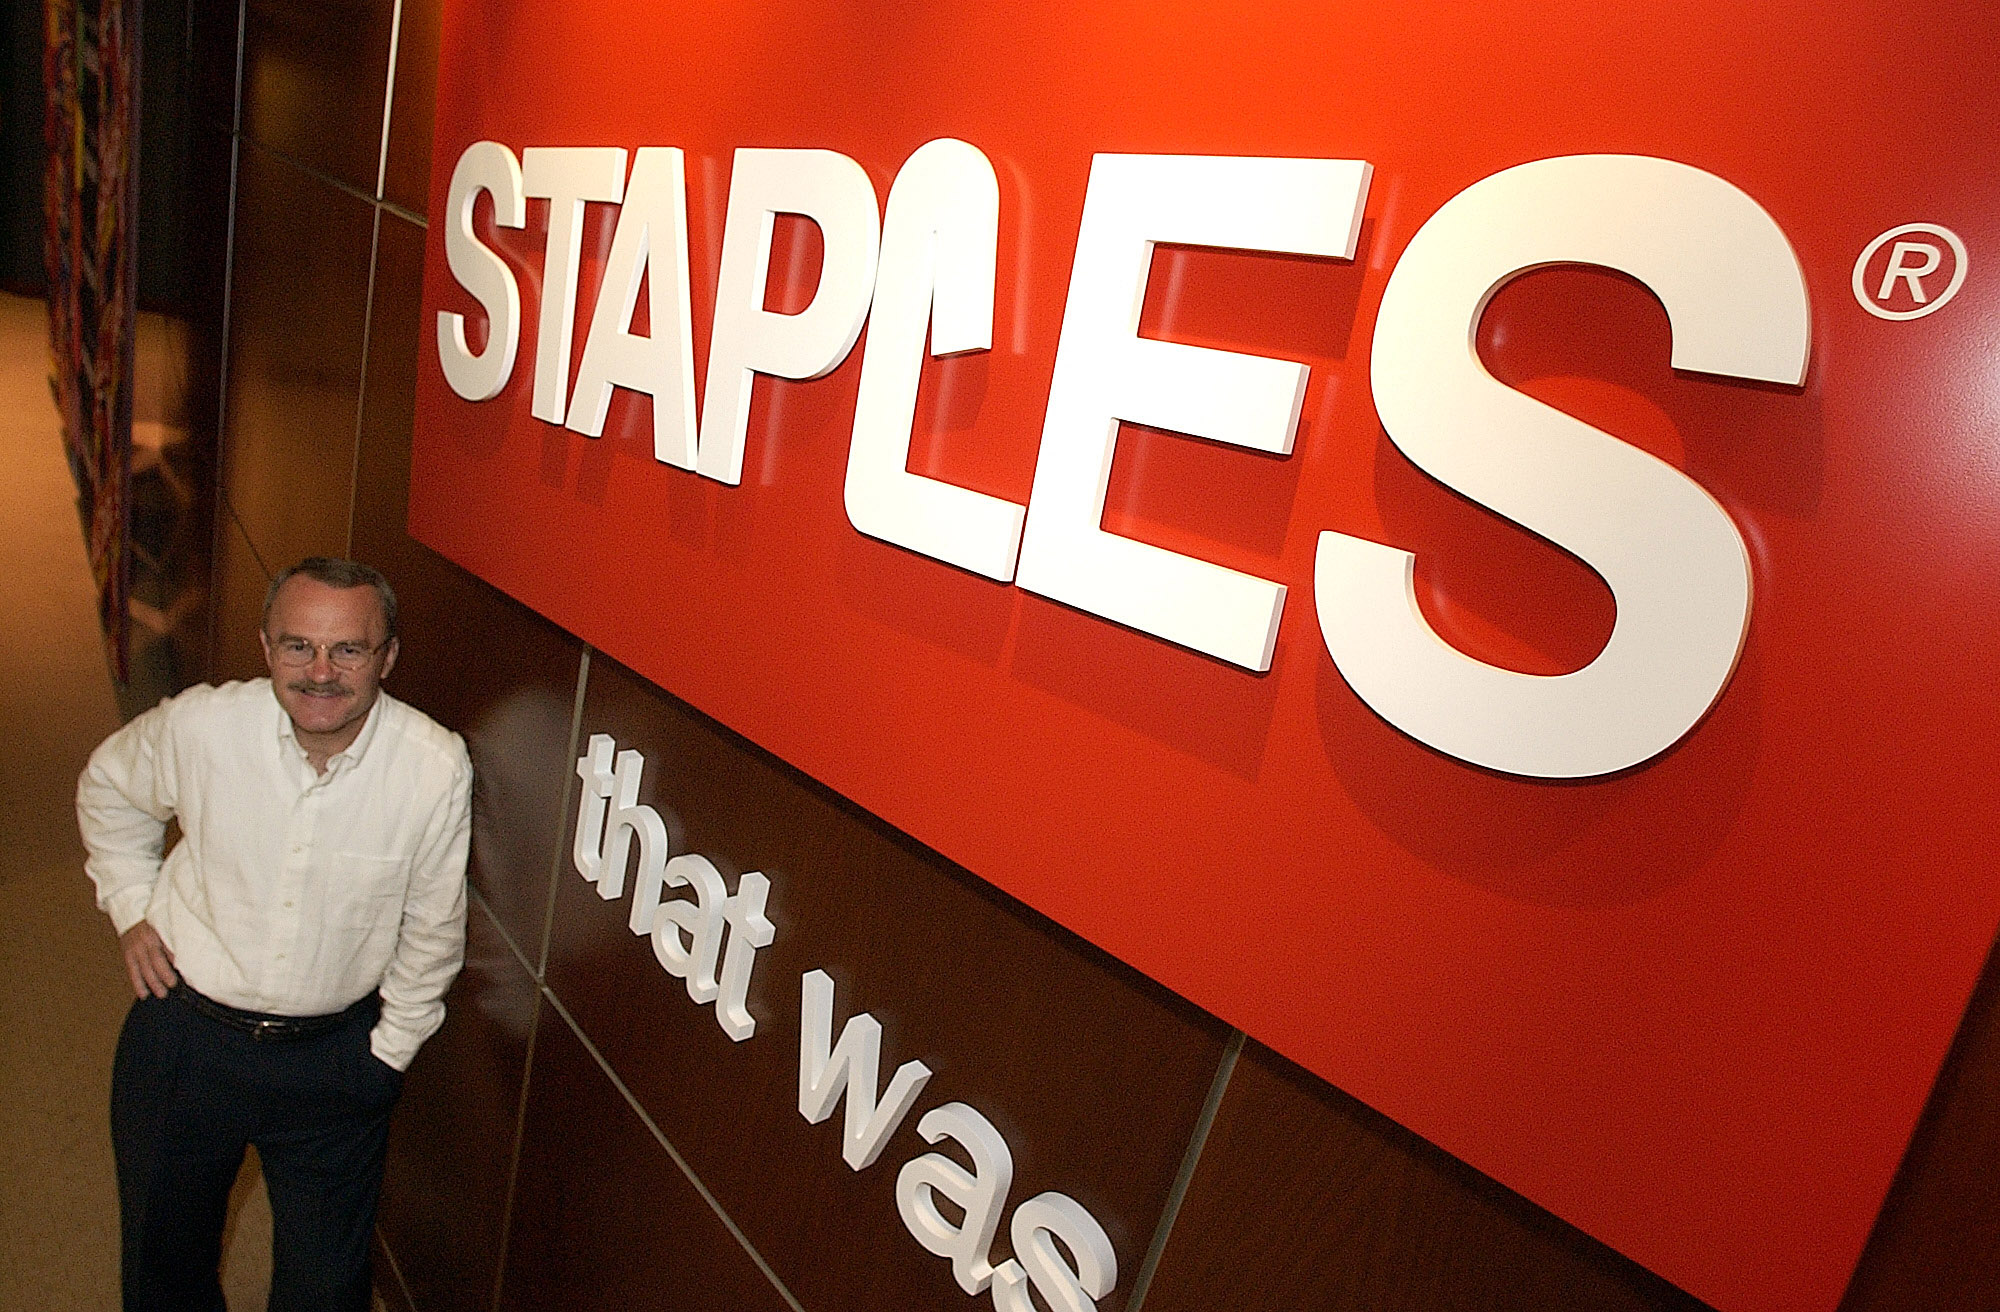 STAPLES EARNINGS